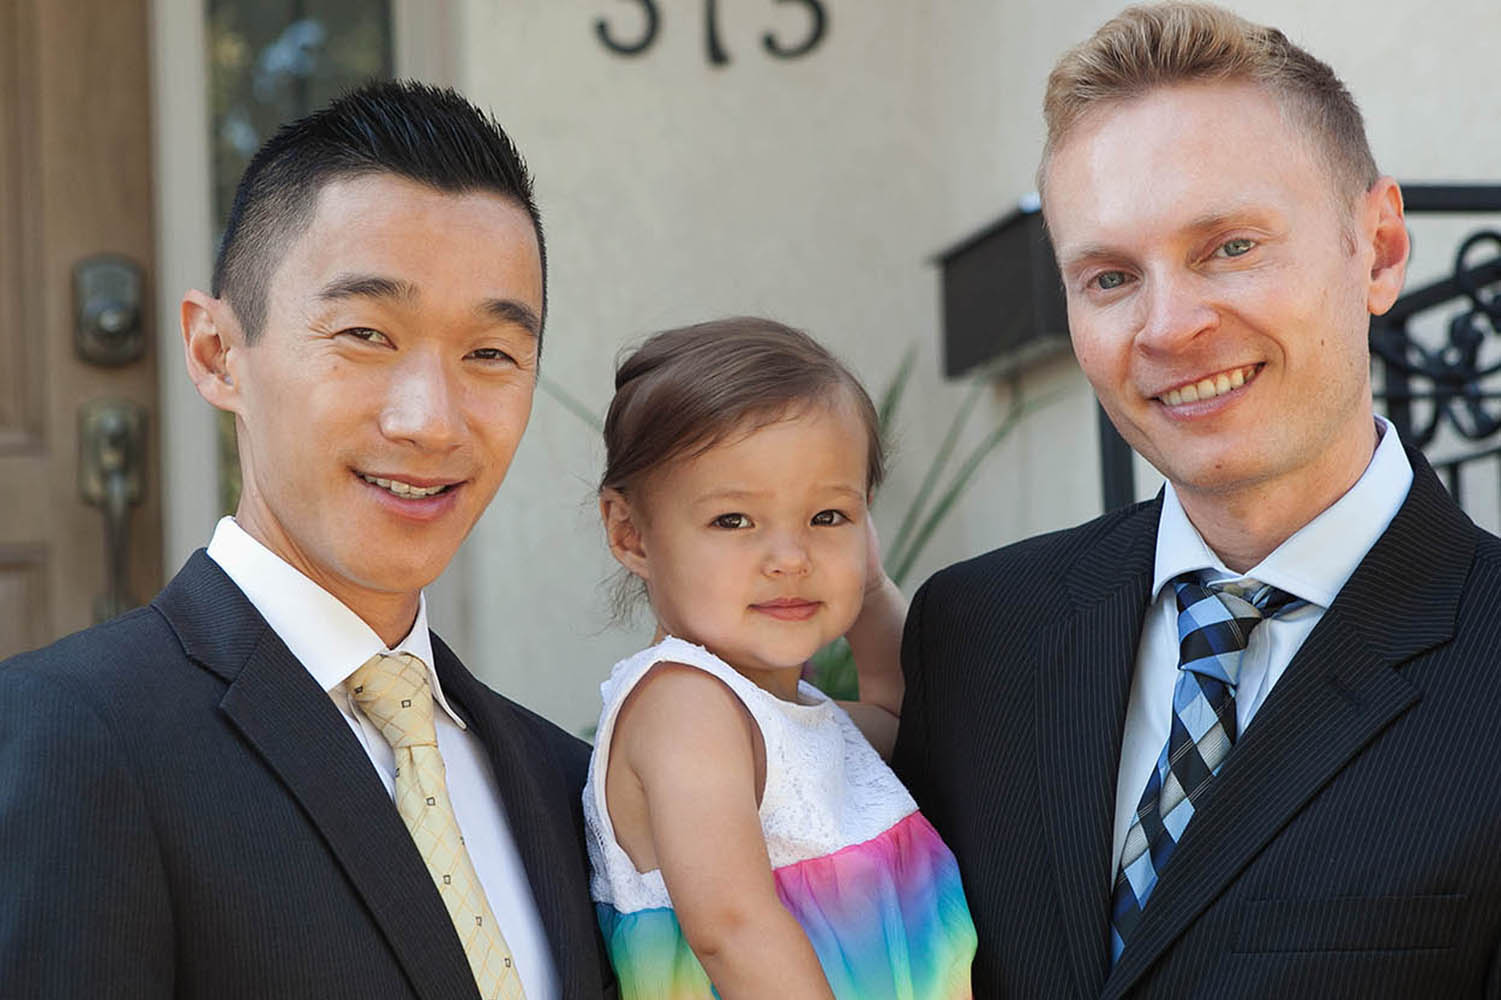 Paul Chan and Ewan French, seen her with their daughter, Jasmine Diane Chan, who turns 3 in June, believe working with family offers valuable support and loyalty.